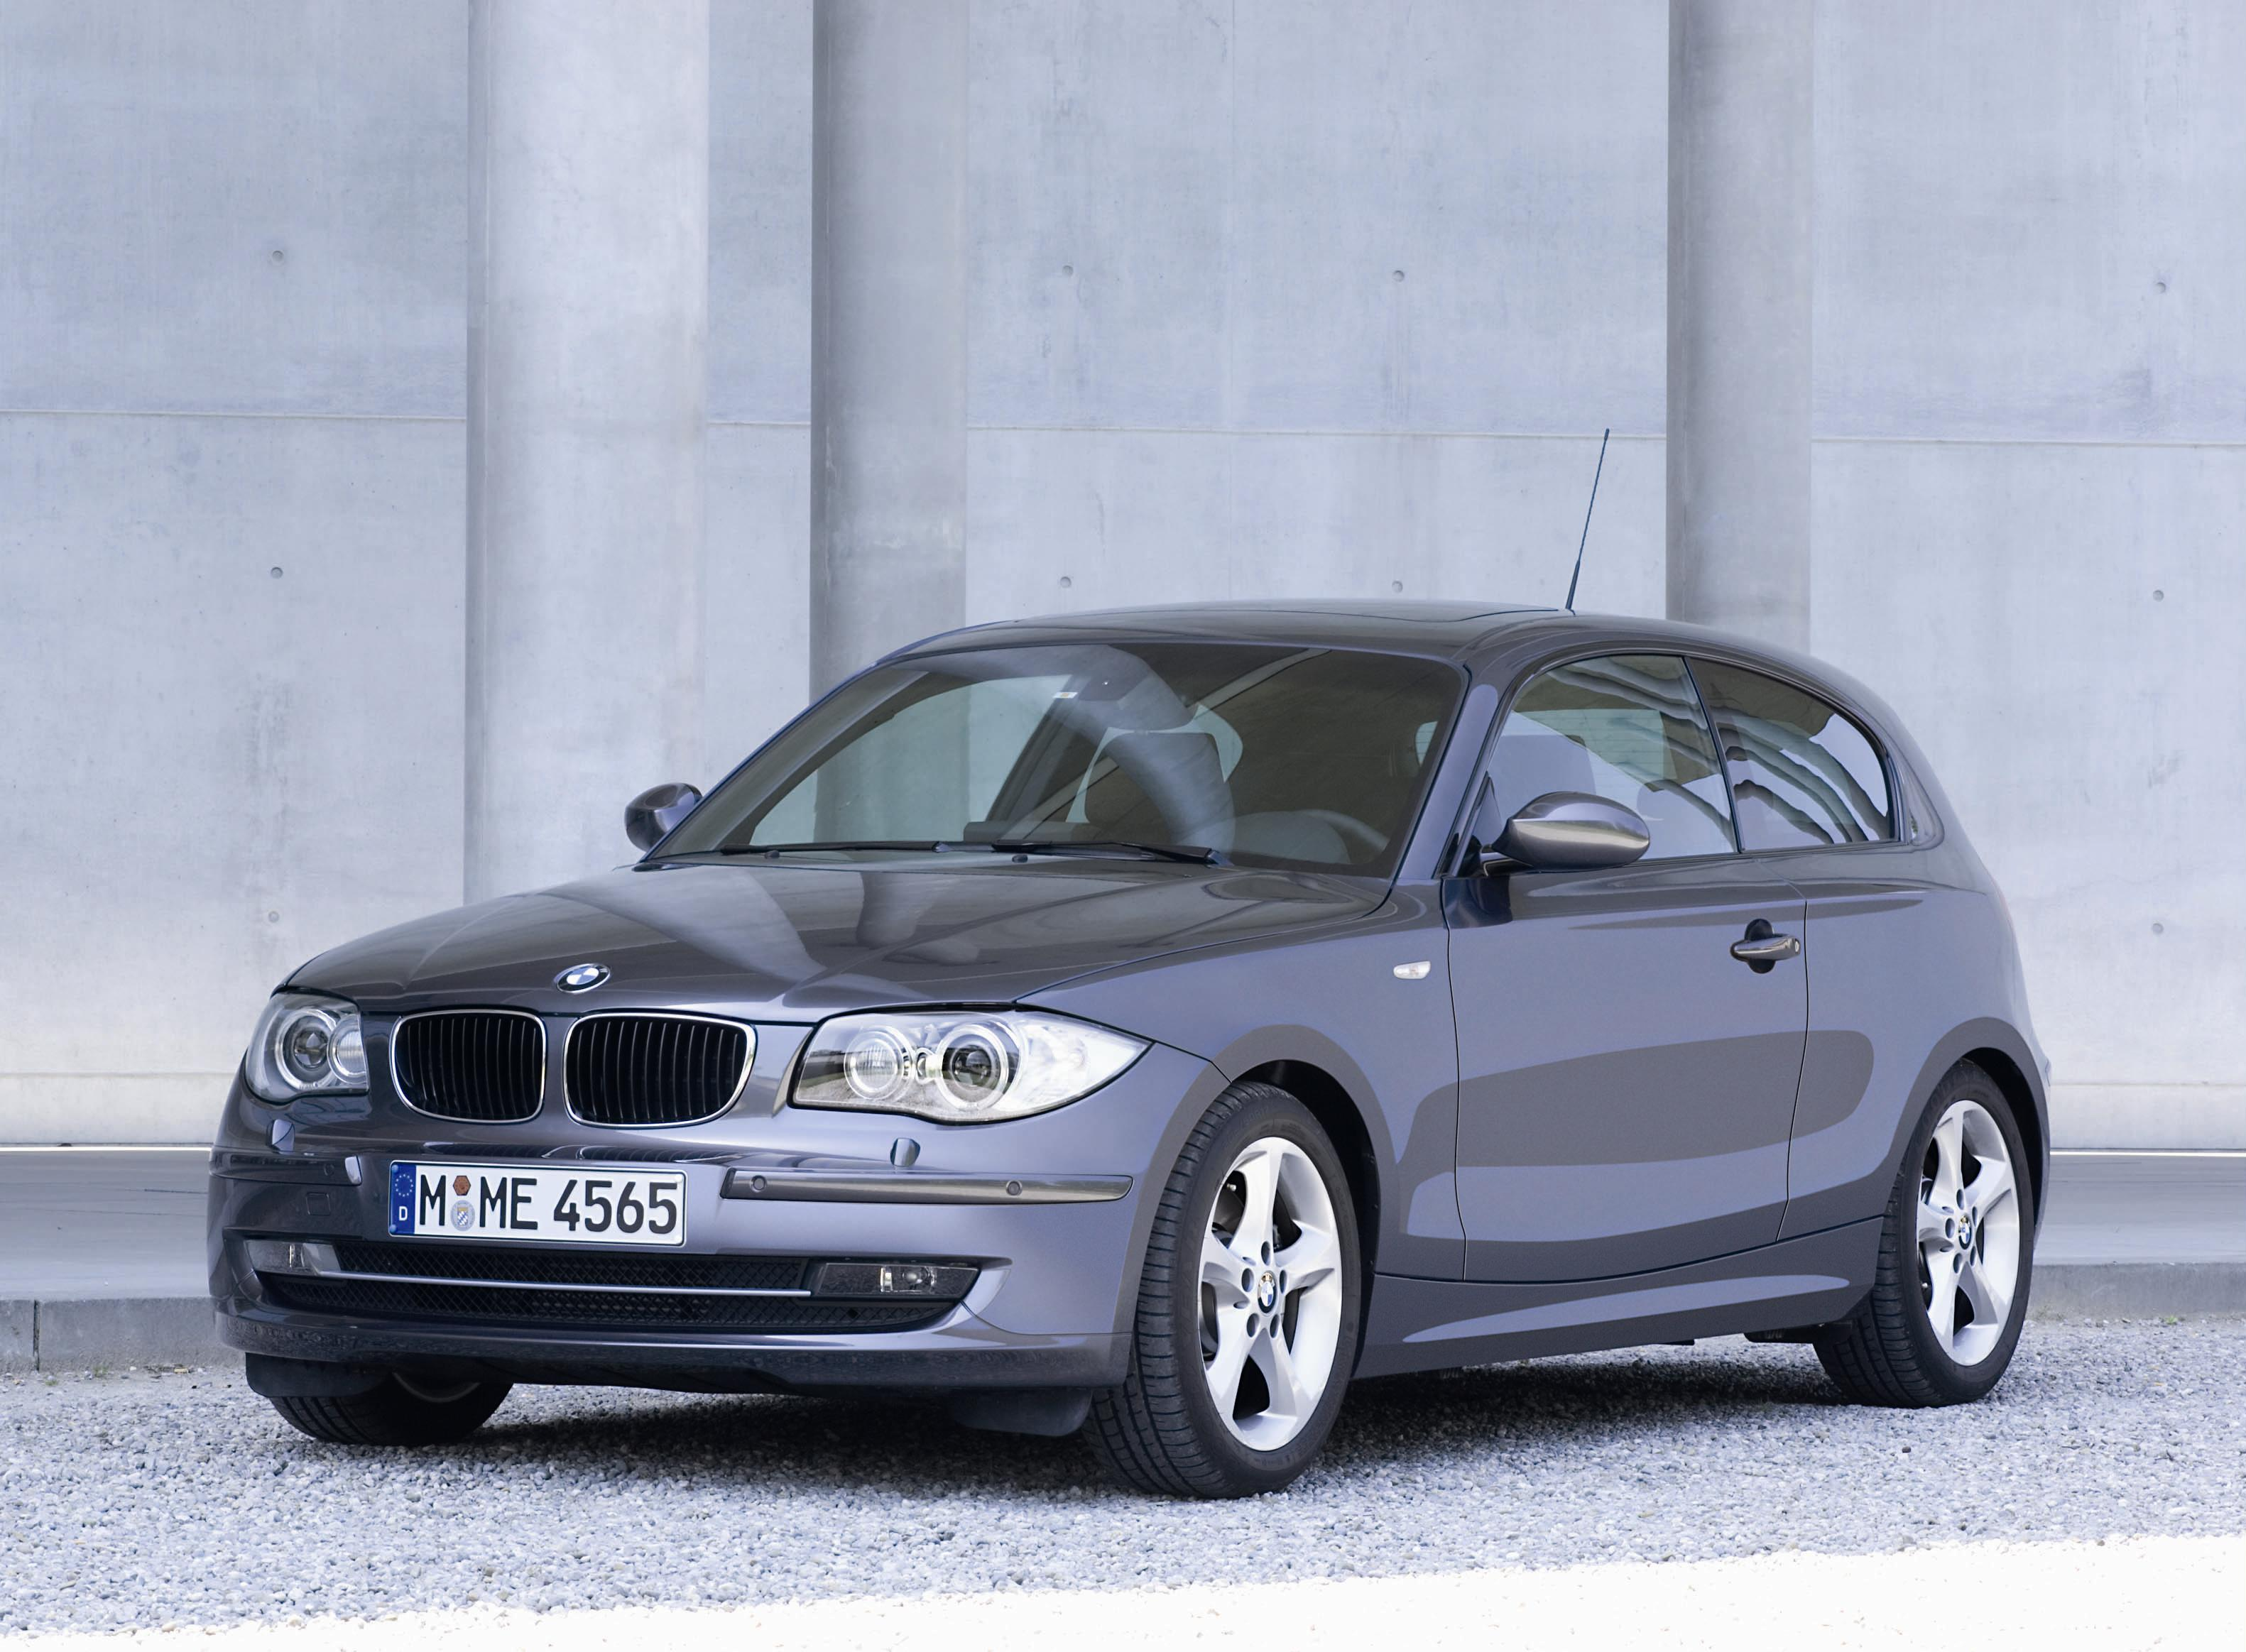 BMW 1 Series News And Reviews | Top Speed